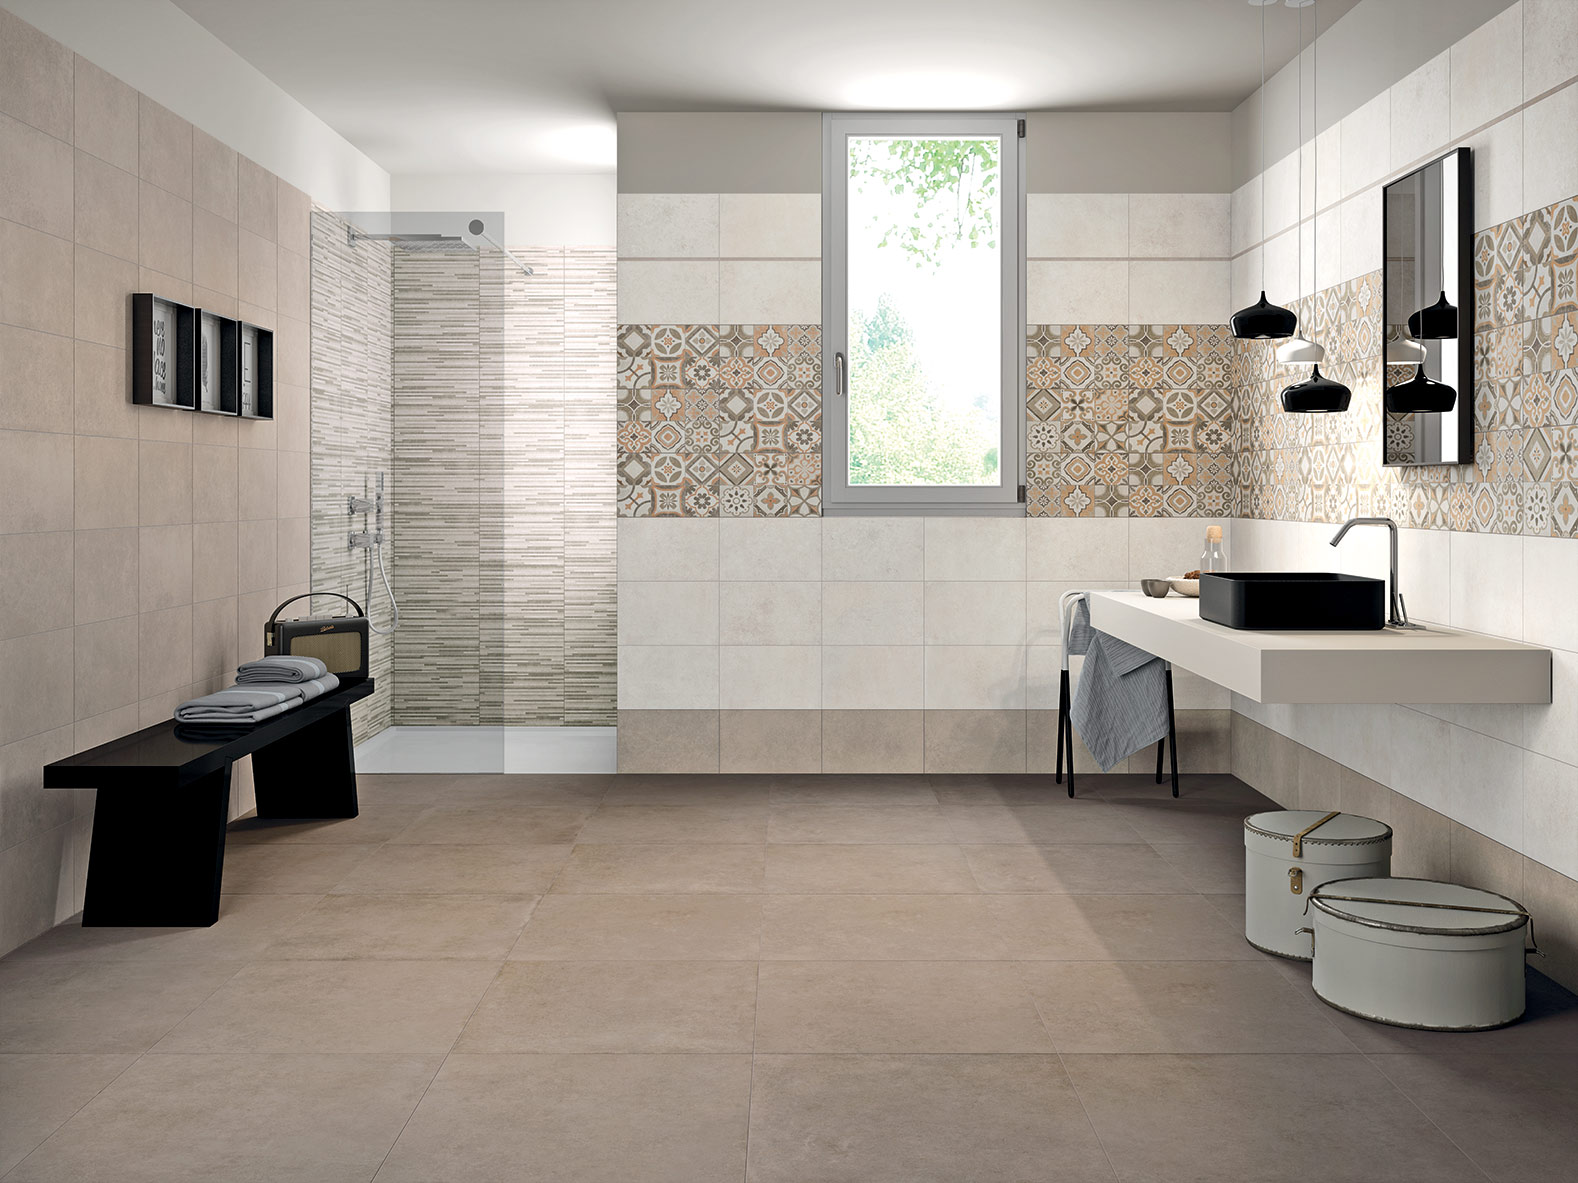 Bagno Moderno Gres Serie Background Pavimenti E Rivestimenti Moda